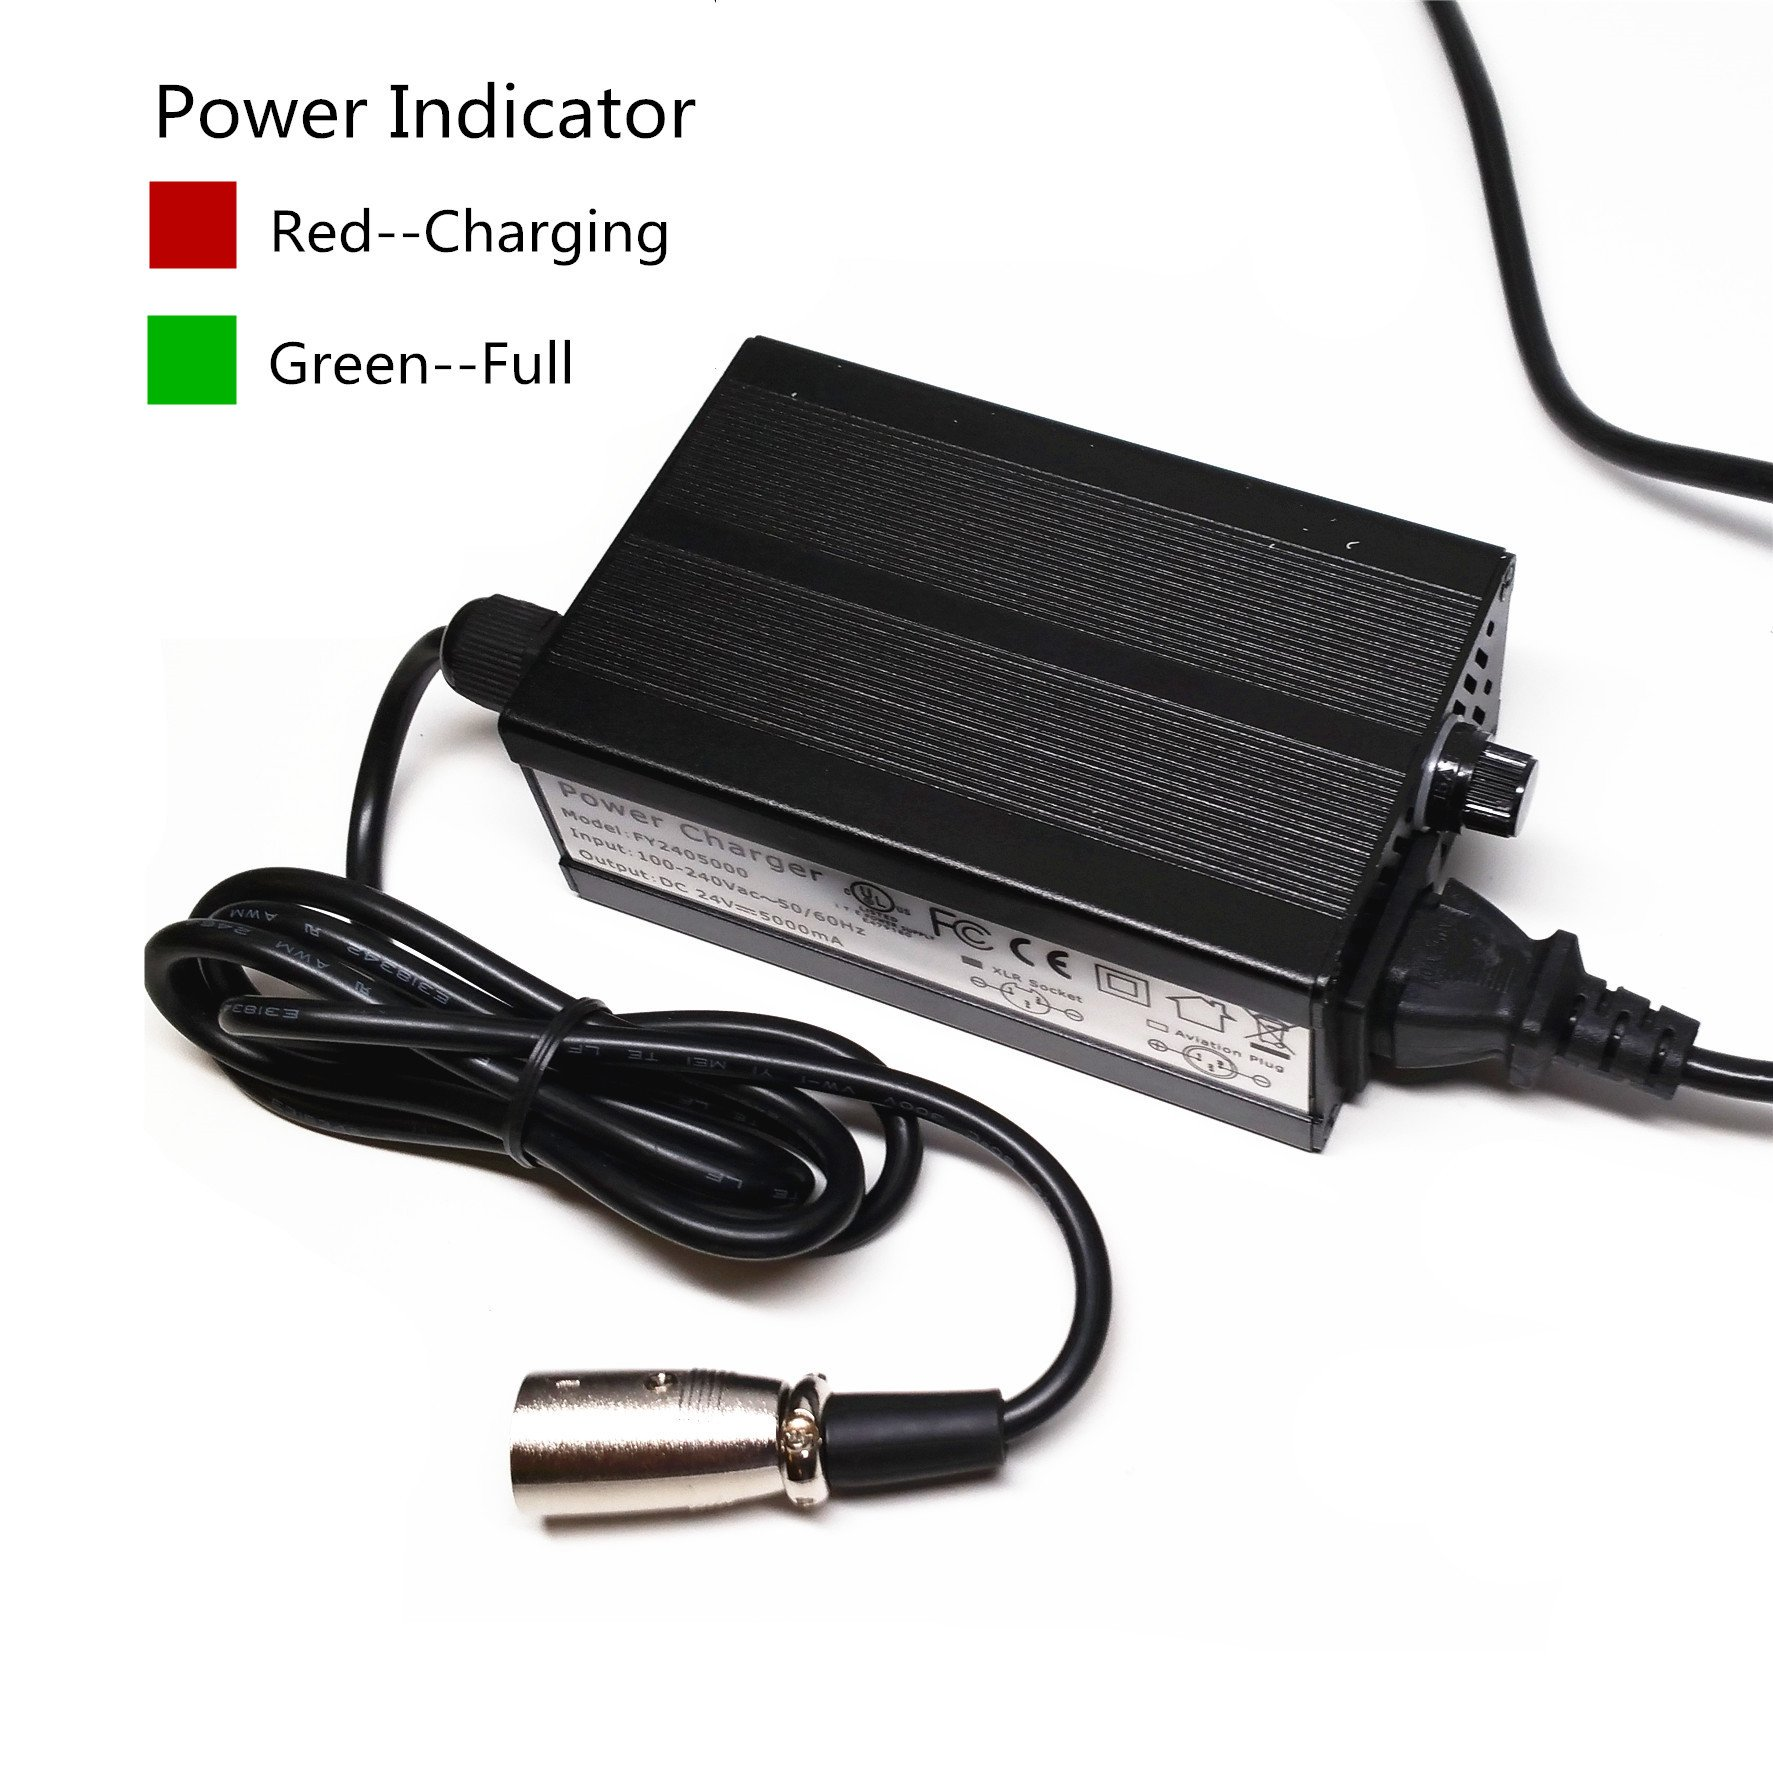 EPtech 24V 5A Battery Charger For Heartway Allure (HP6) / Allure R (HP6R) / Allure RT (HP6RT) / Allure S (HP6S) / Aviator (S8) / Bolero (PF2) / Bolero S (PF2S) / Escape (HP1) / Escape DX (HP5)